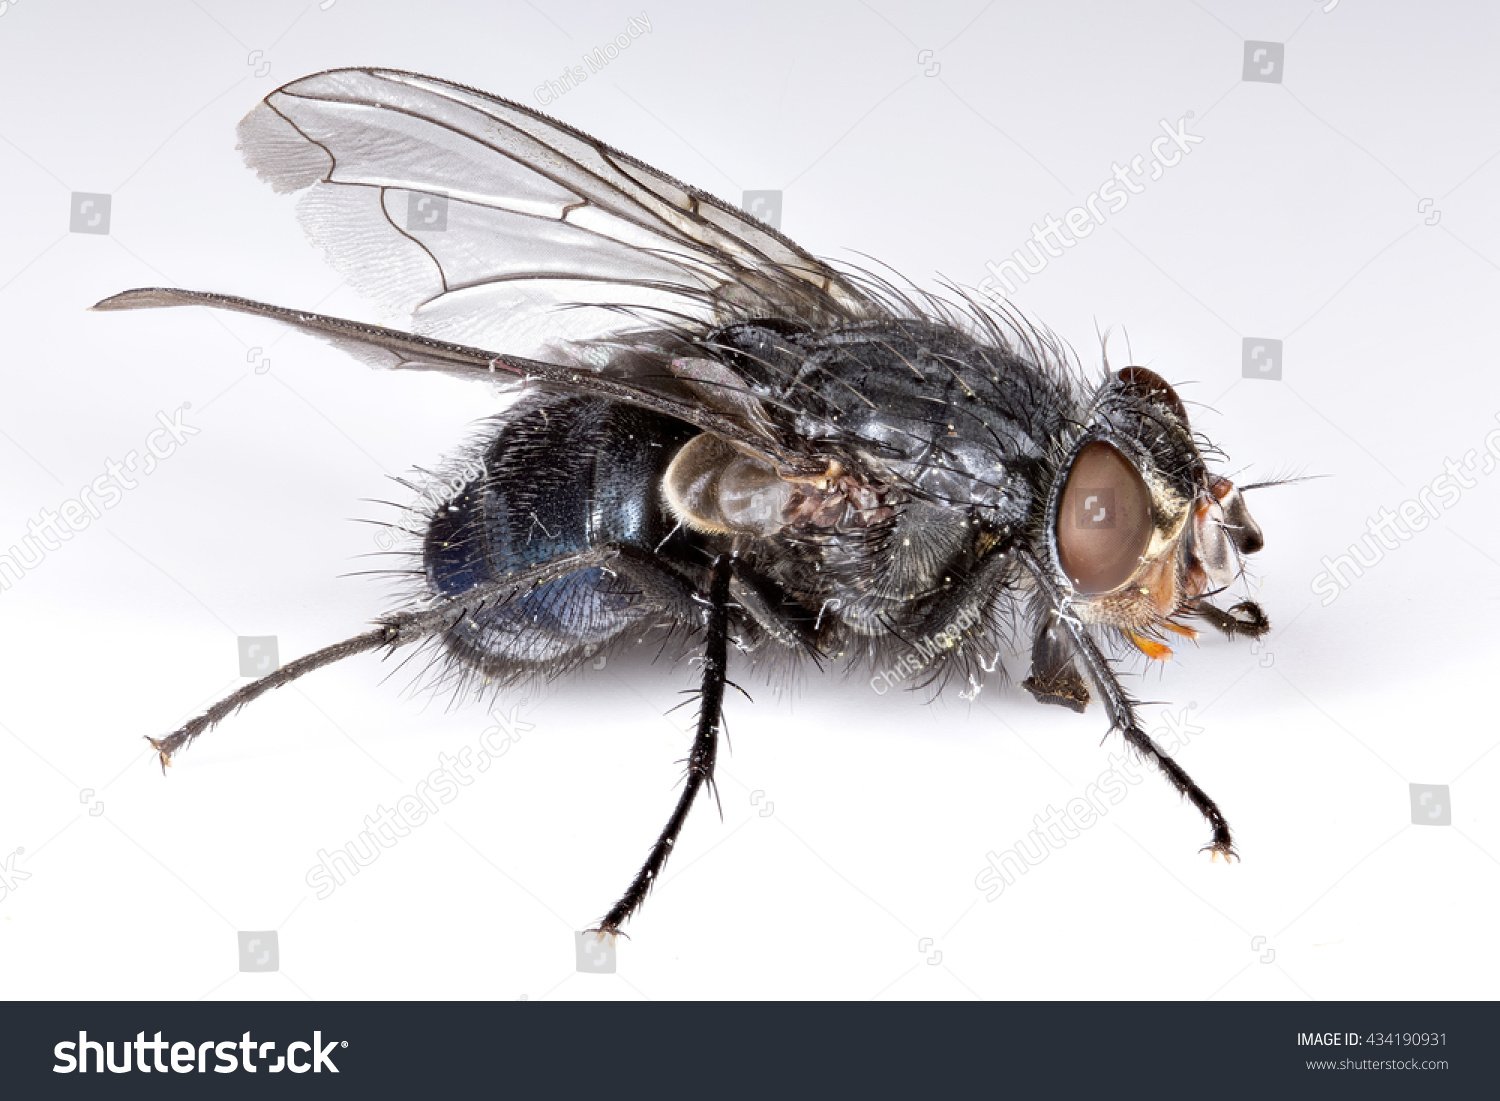 Extreme Close House Fly Musca Domestica Stock Photo (Safe to Use ...